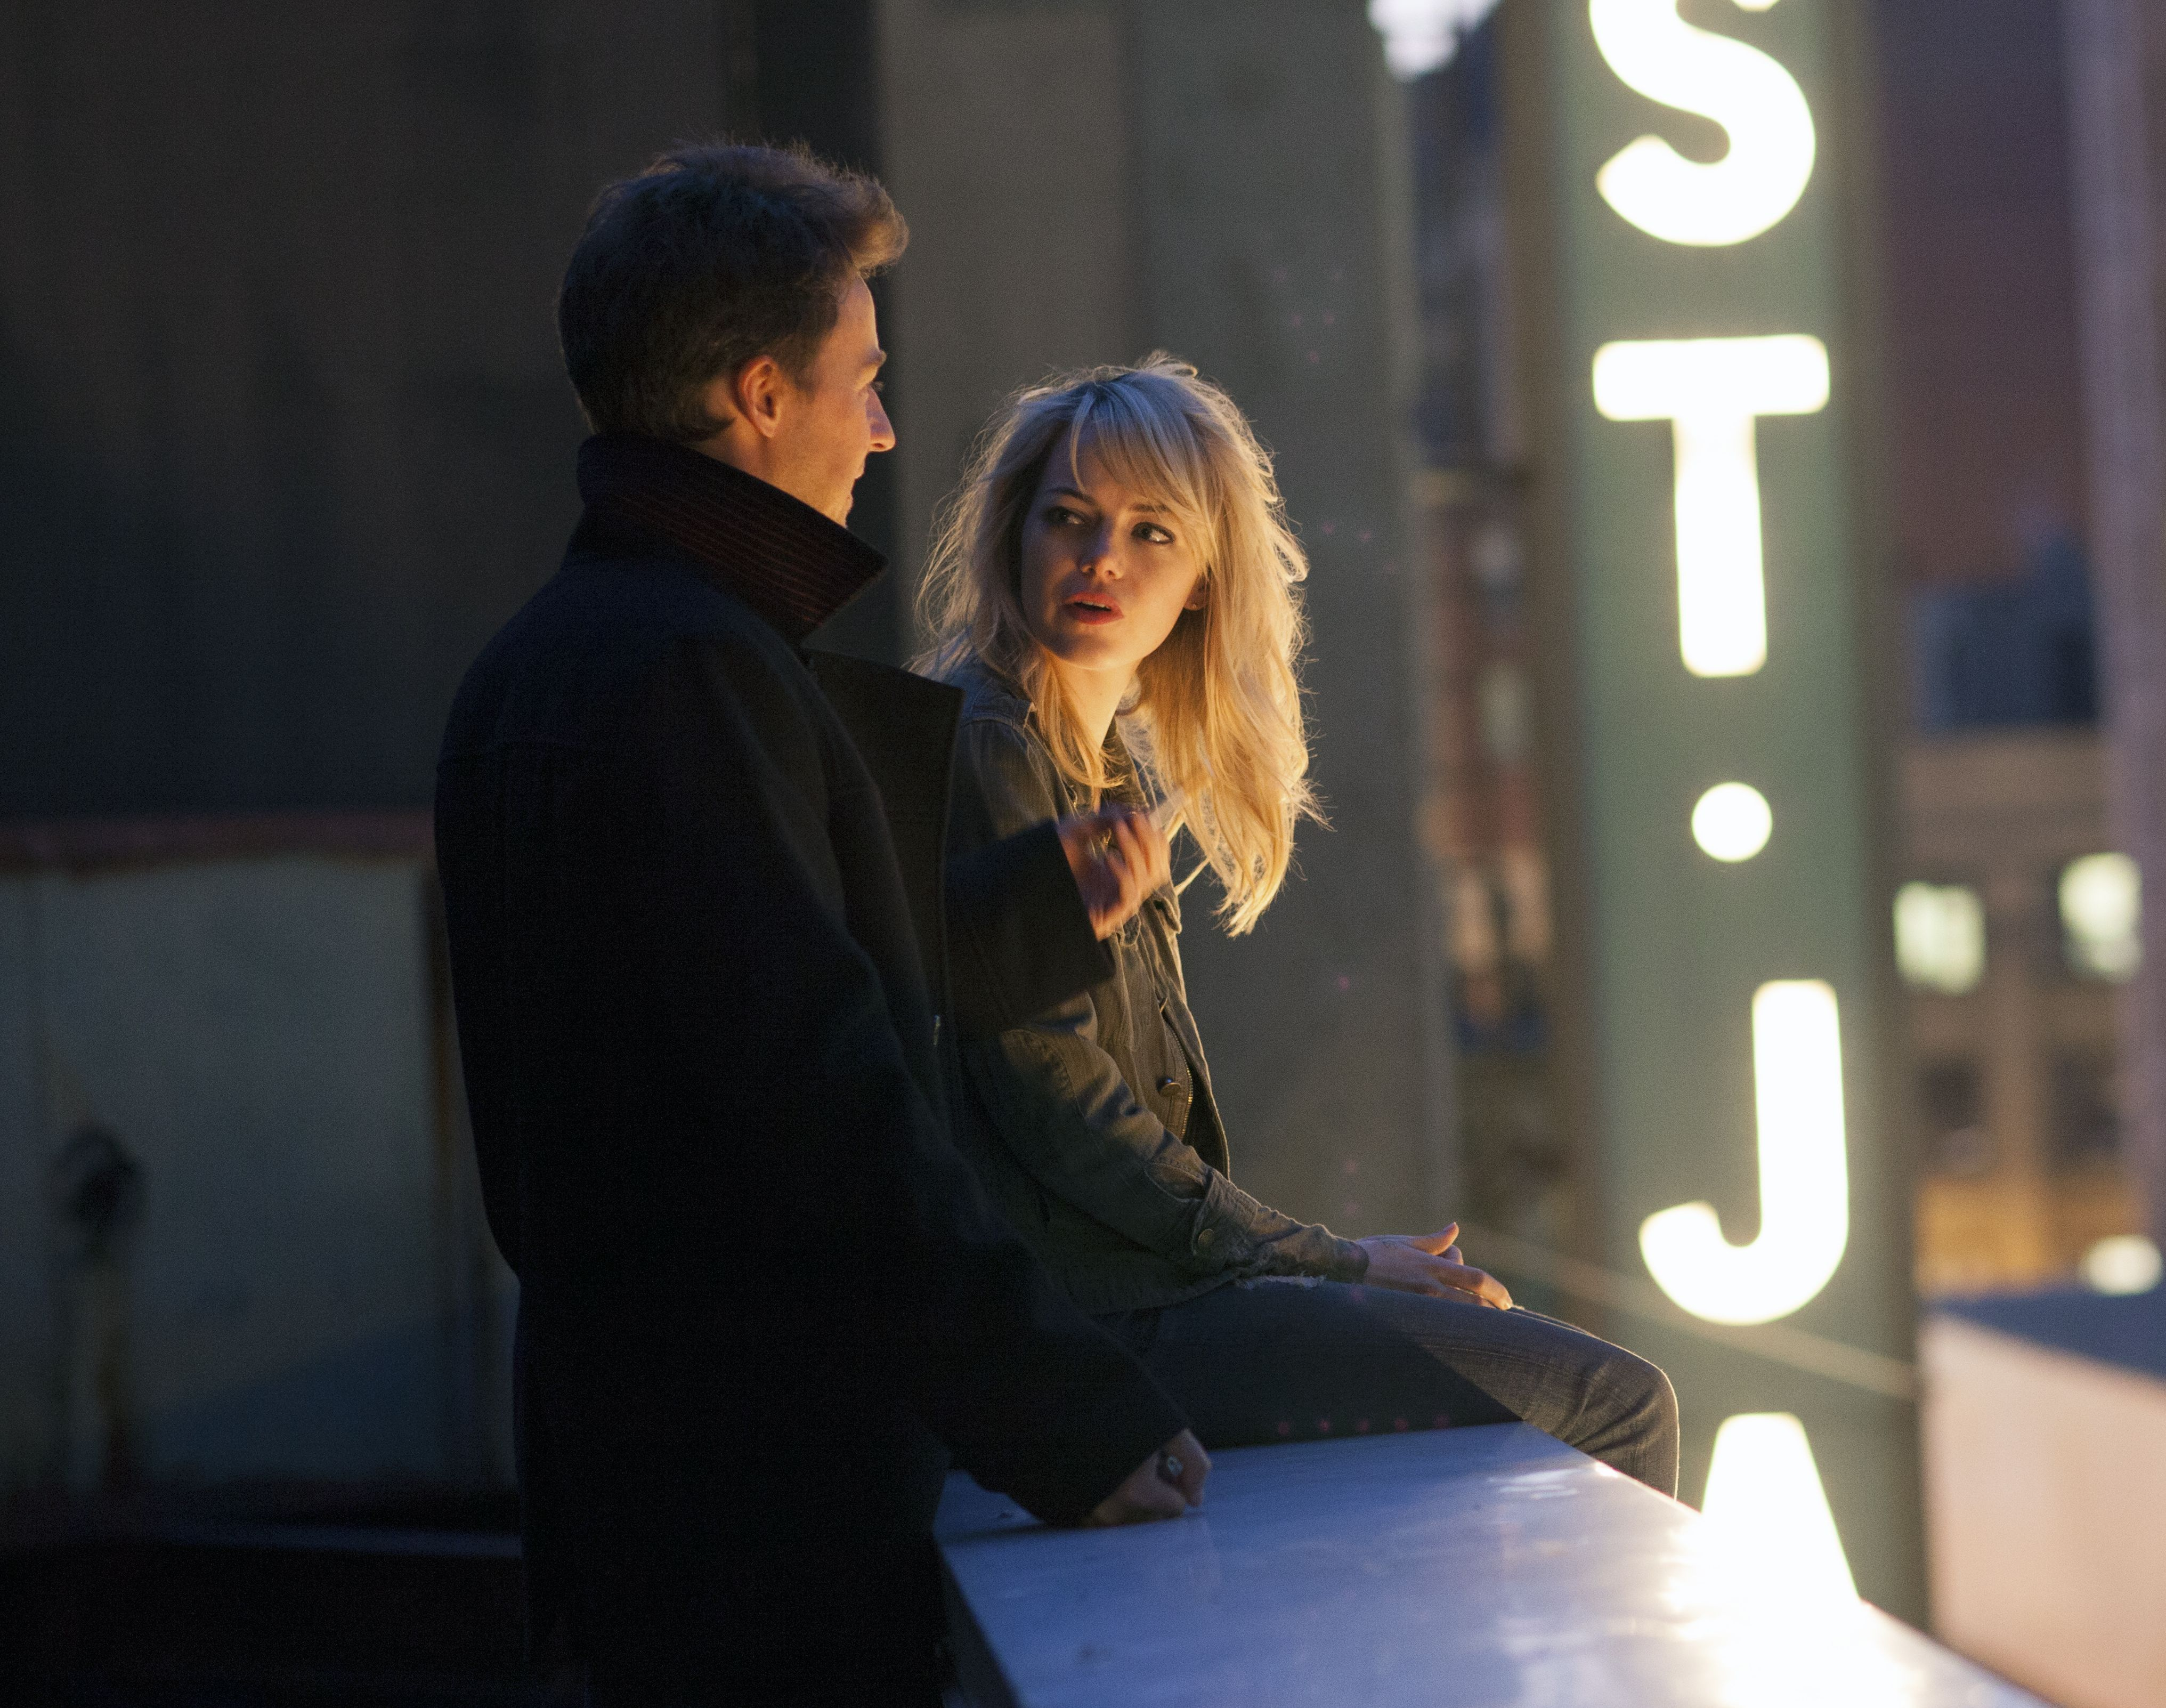 Edward Norton and Emma Stone on the rooftop in Birdman